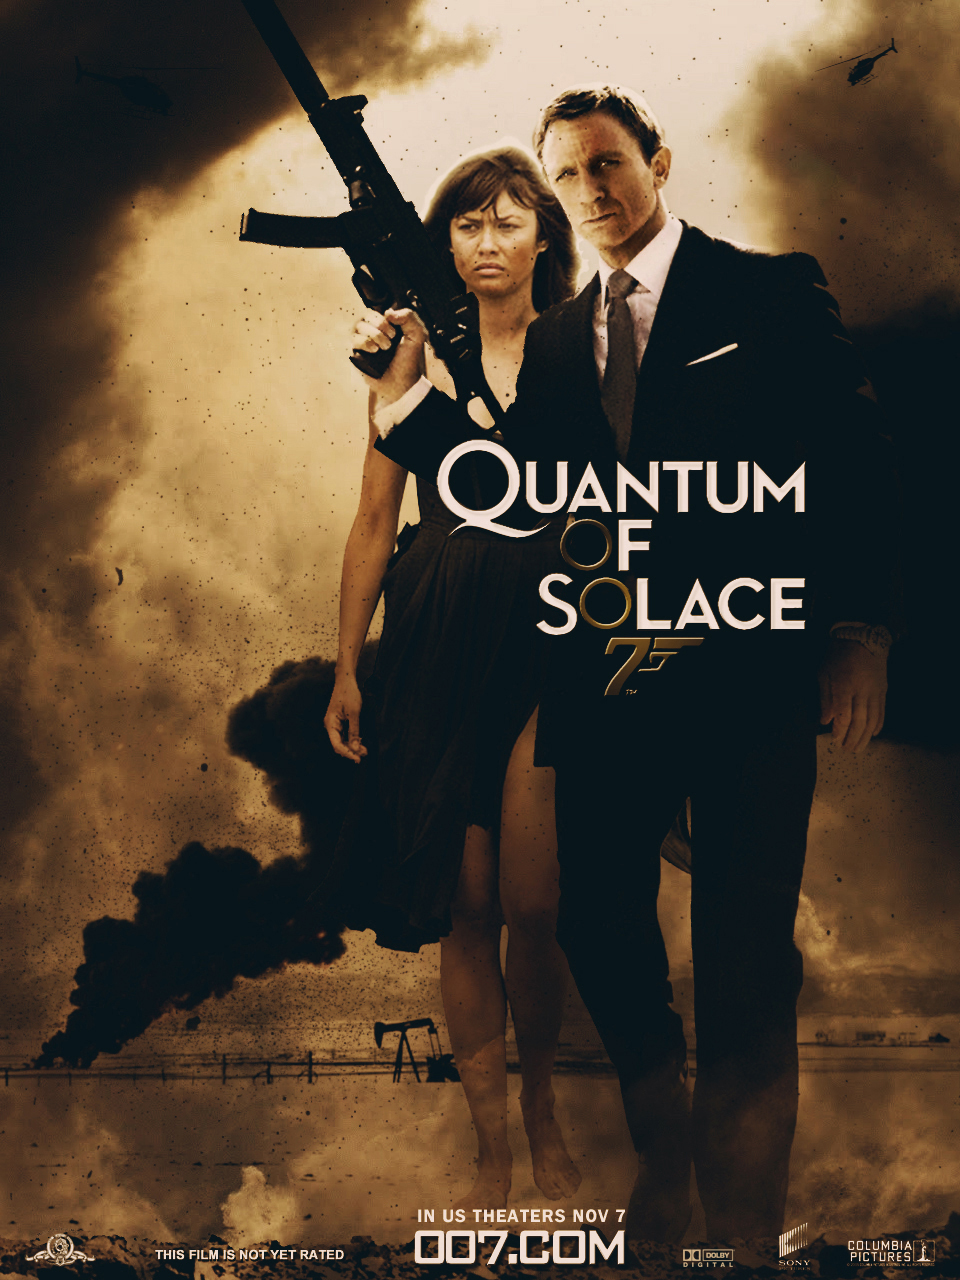 Quantum of solace poster by agustin09 on DeviantArt